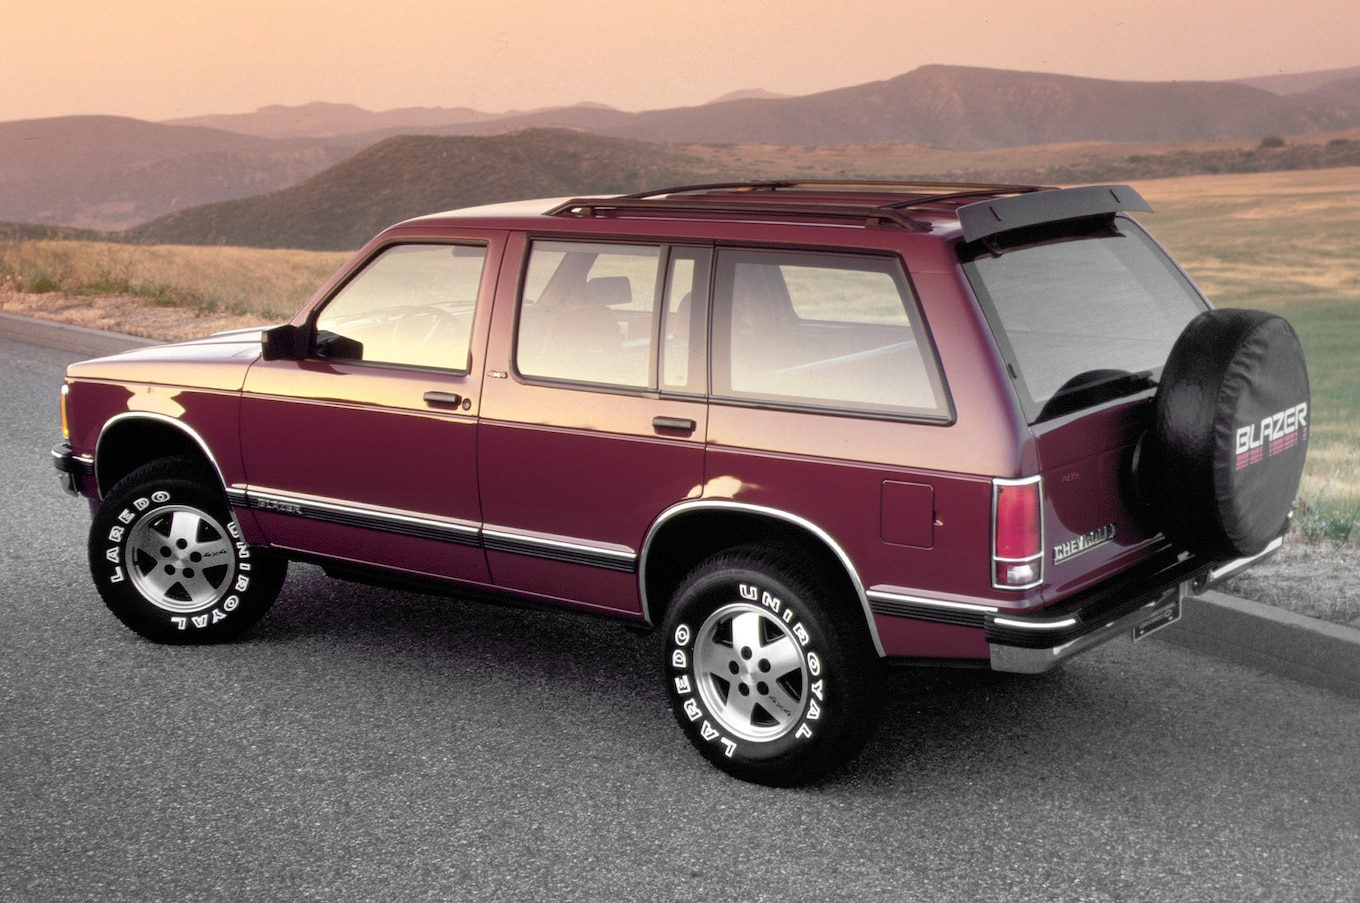 hight resolution of chevrolet blazer photos and history from truck based suv to car based crossover motortrend